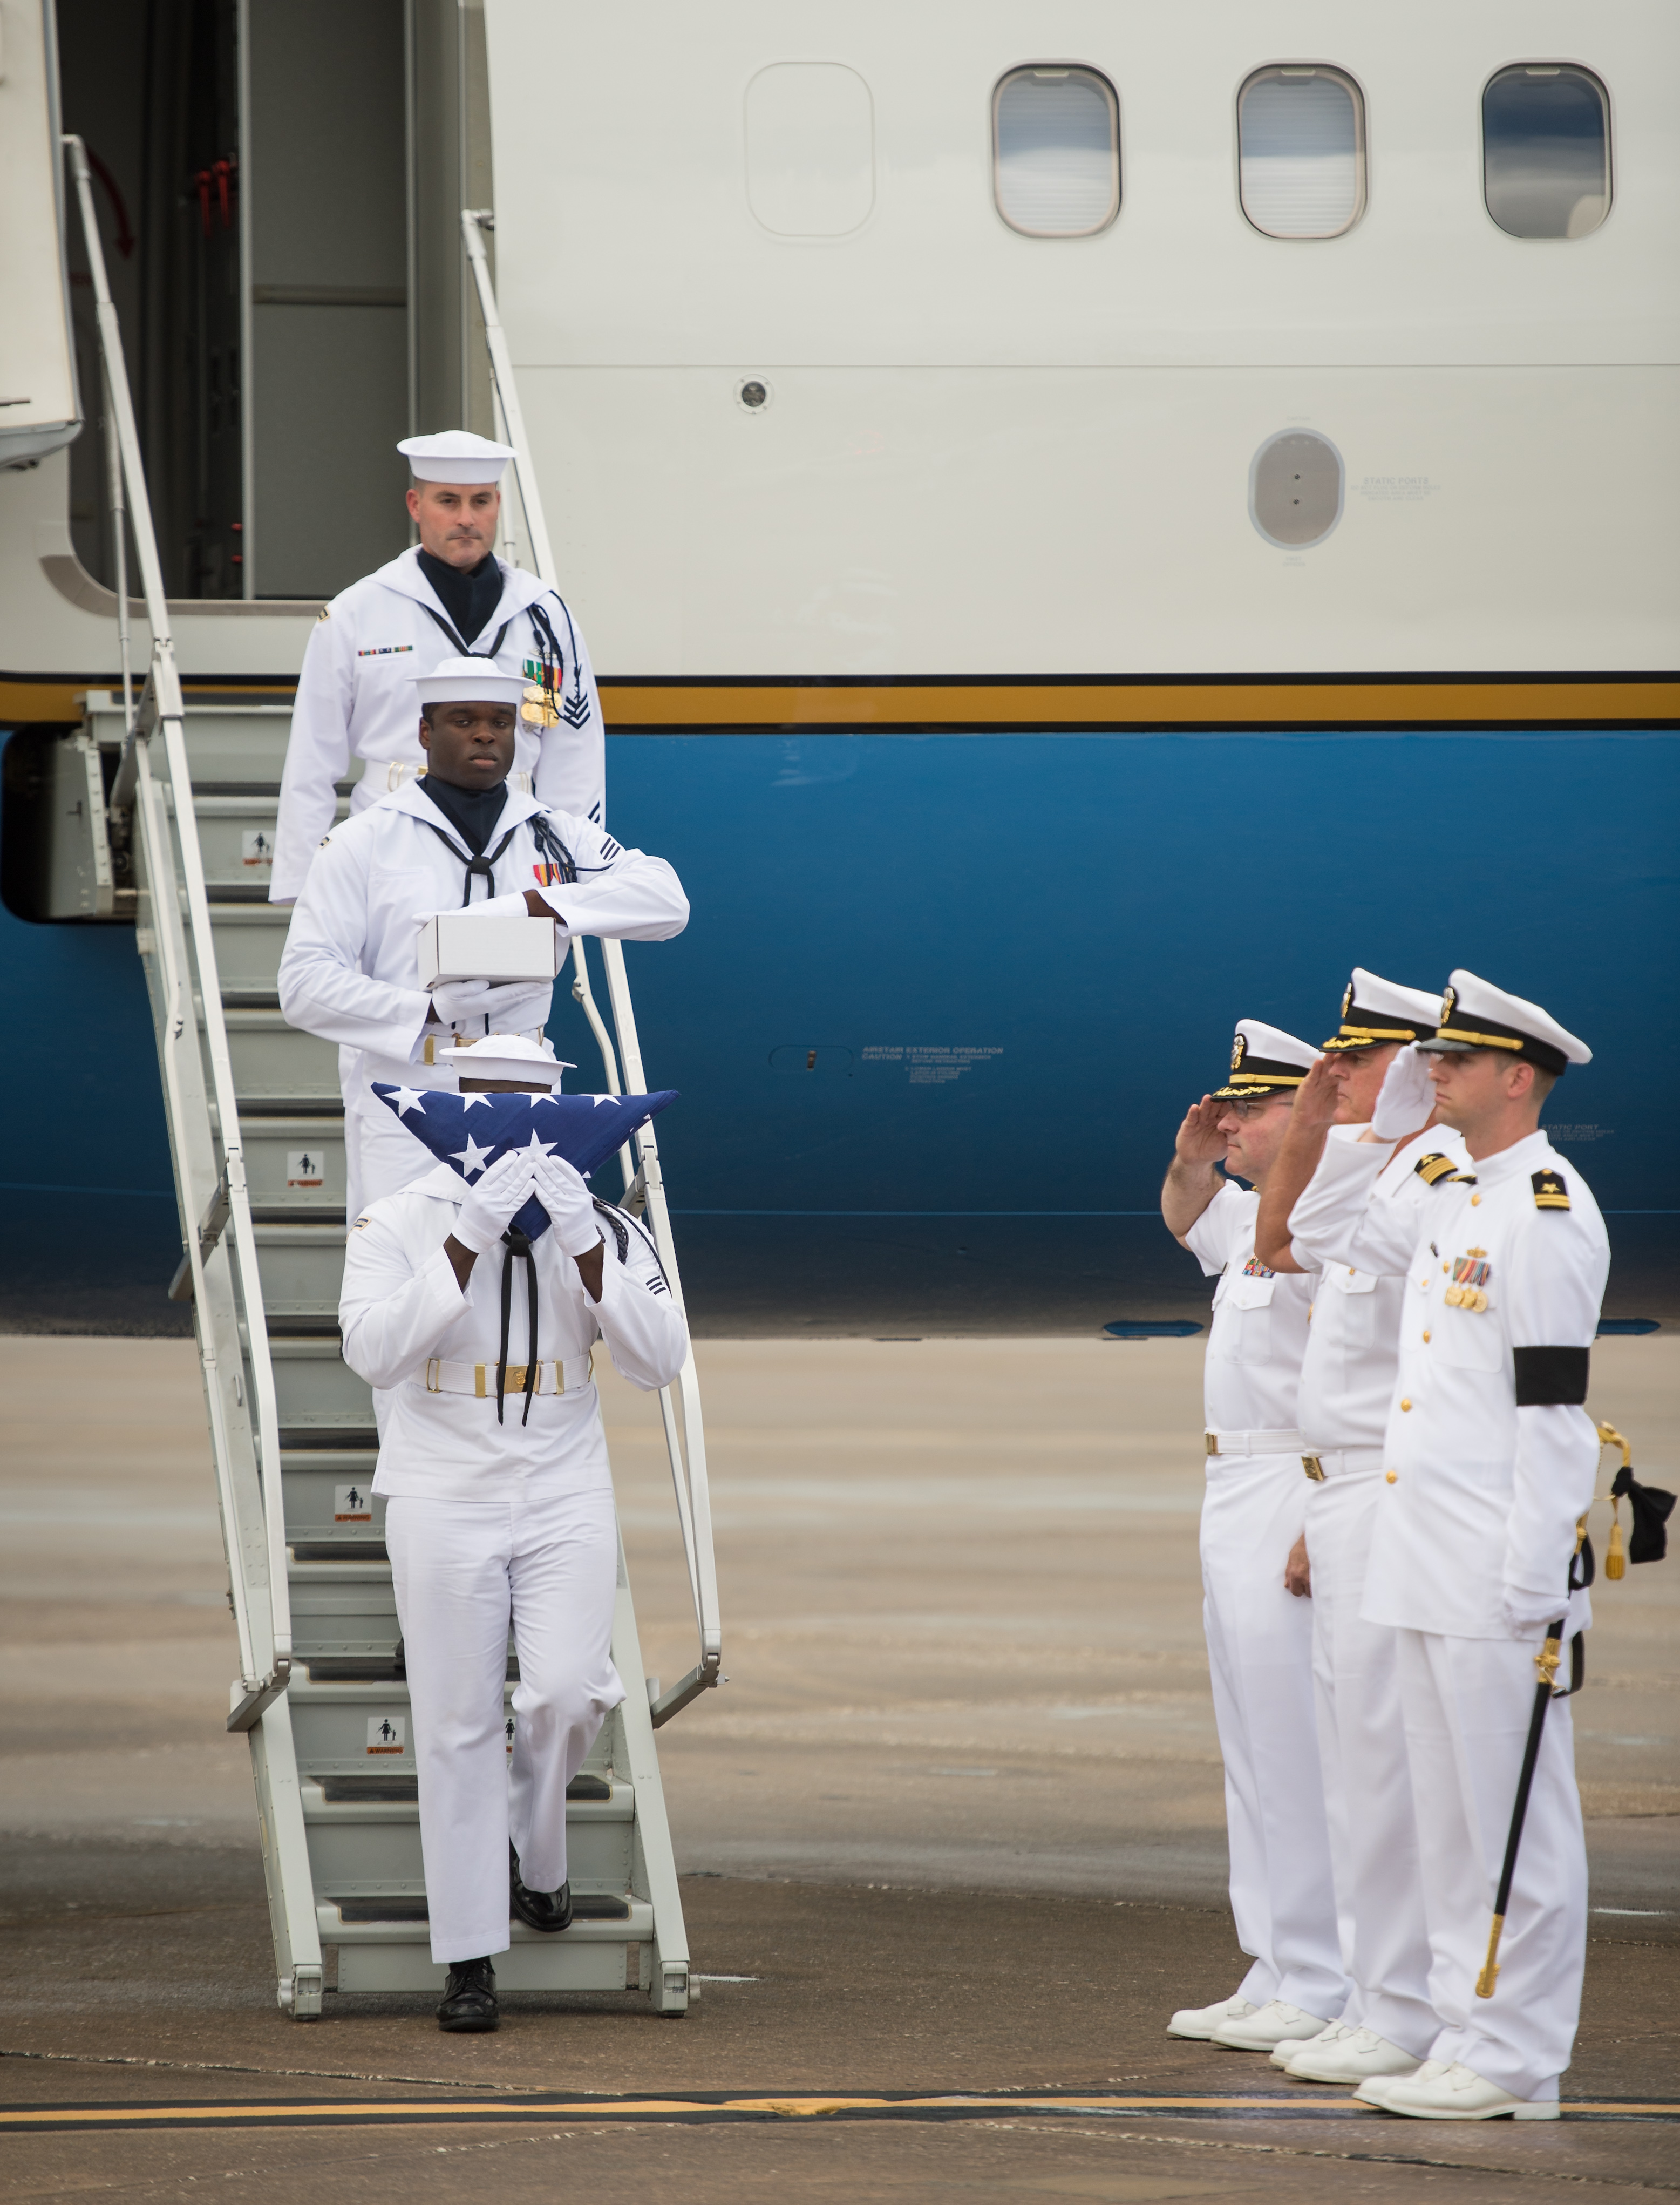 date neil armstrong burial - photo #12